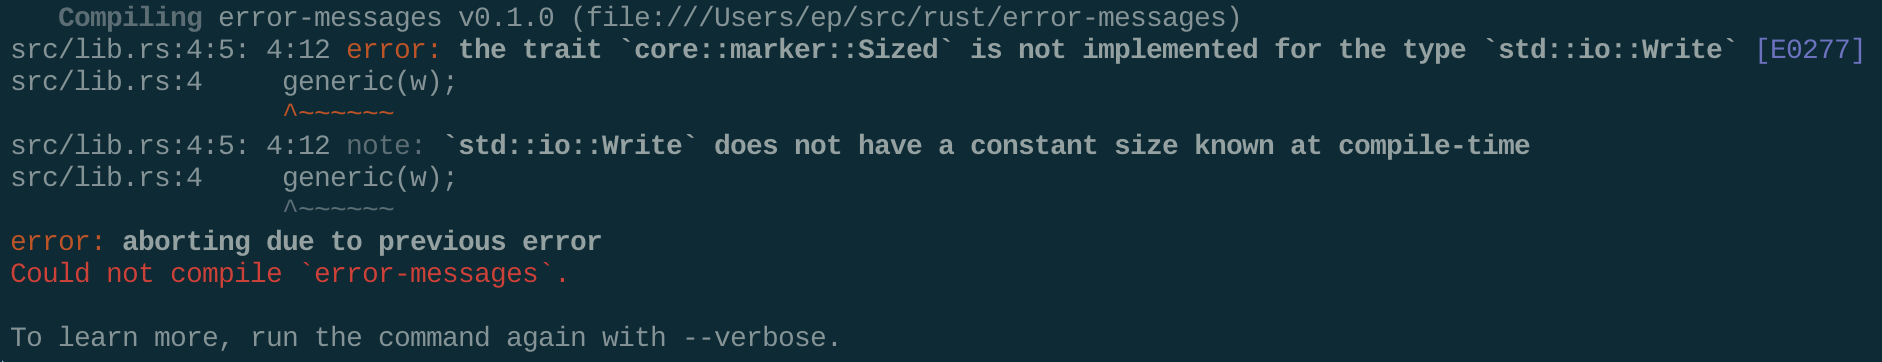 A terminal screenshot of the 1.2.0 error message.